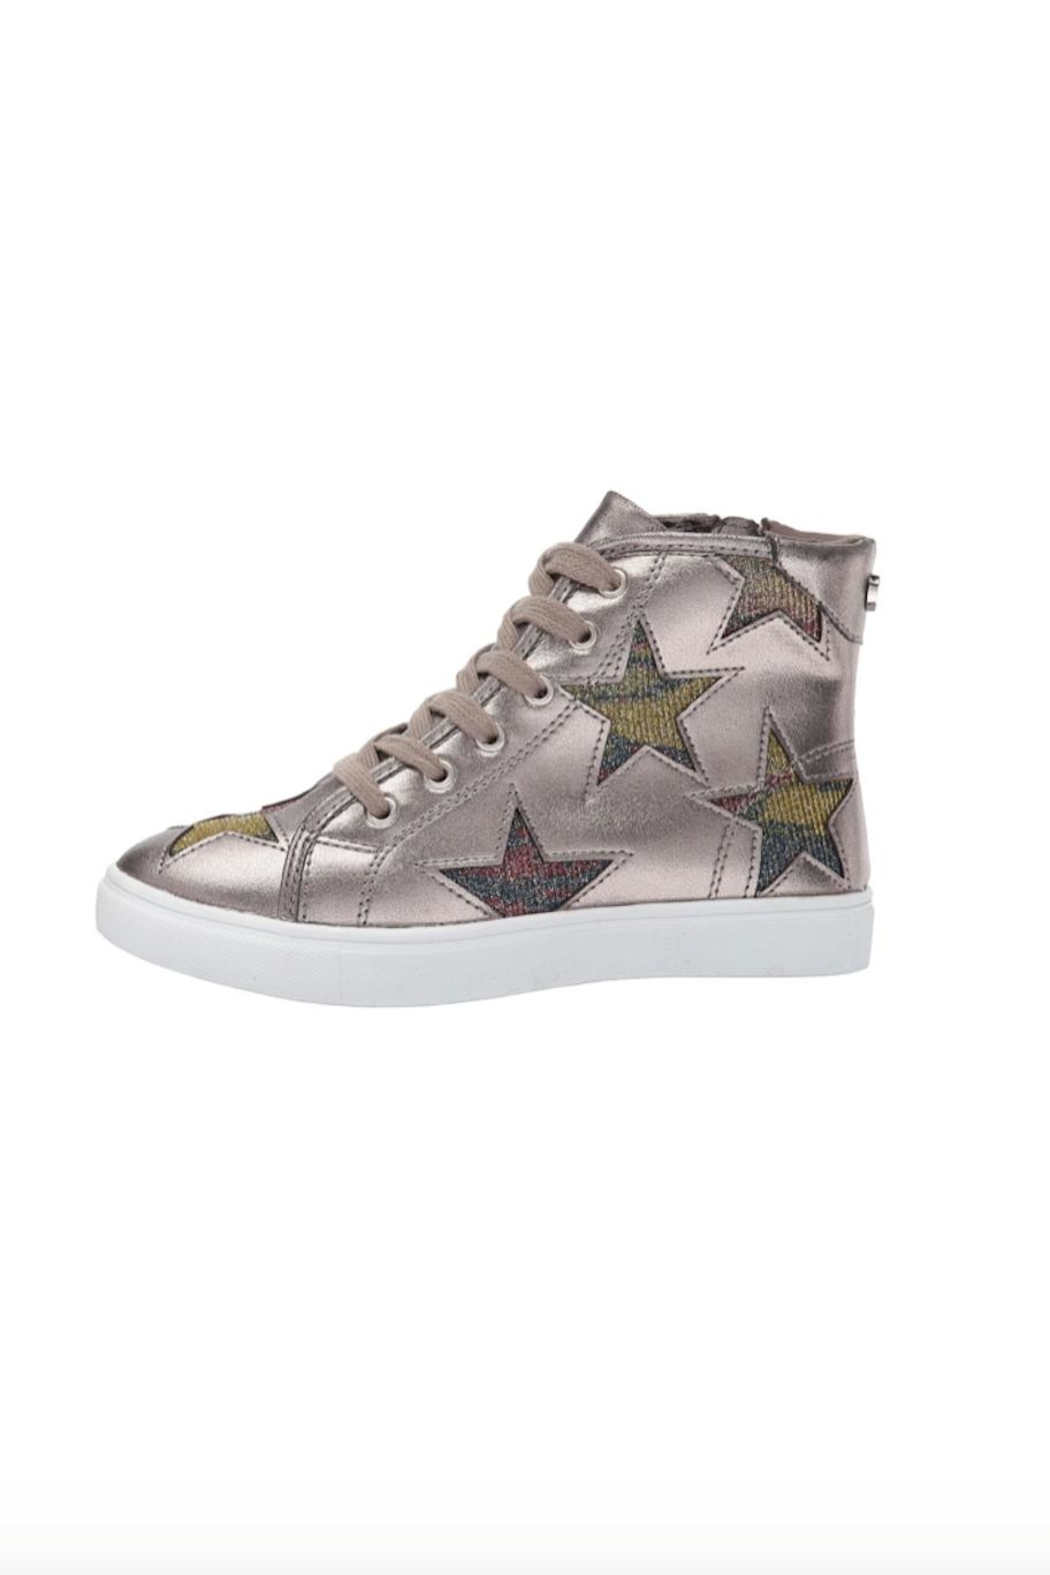 Steve Madden Star Cut-Out Sneaker - Main Image